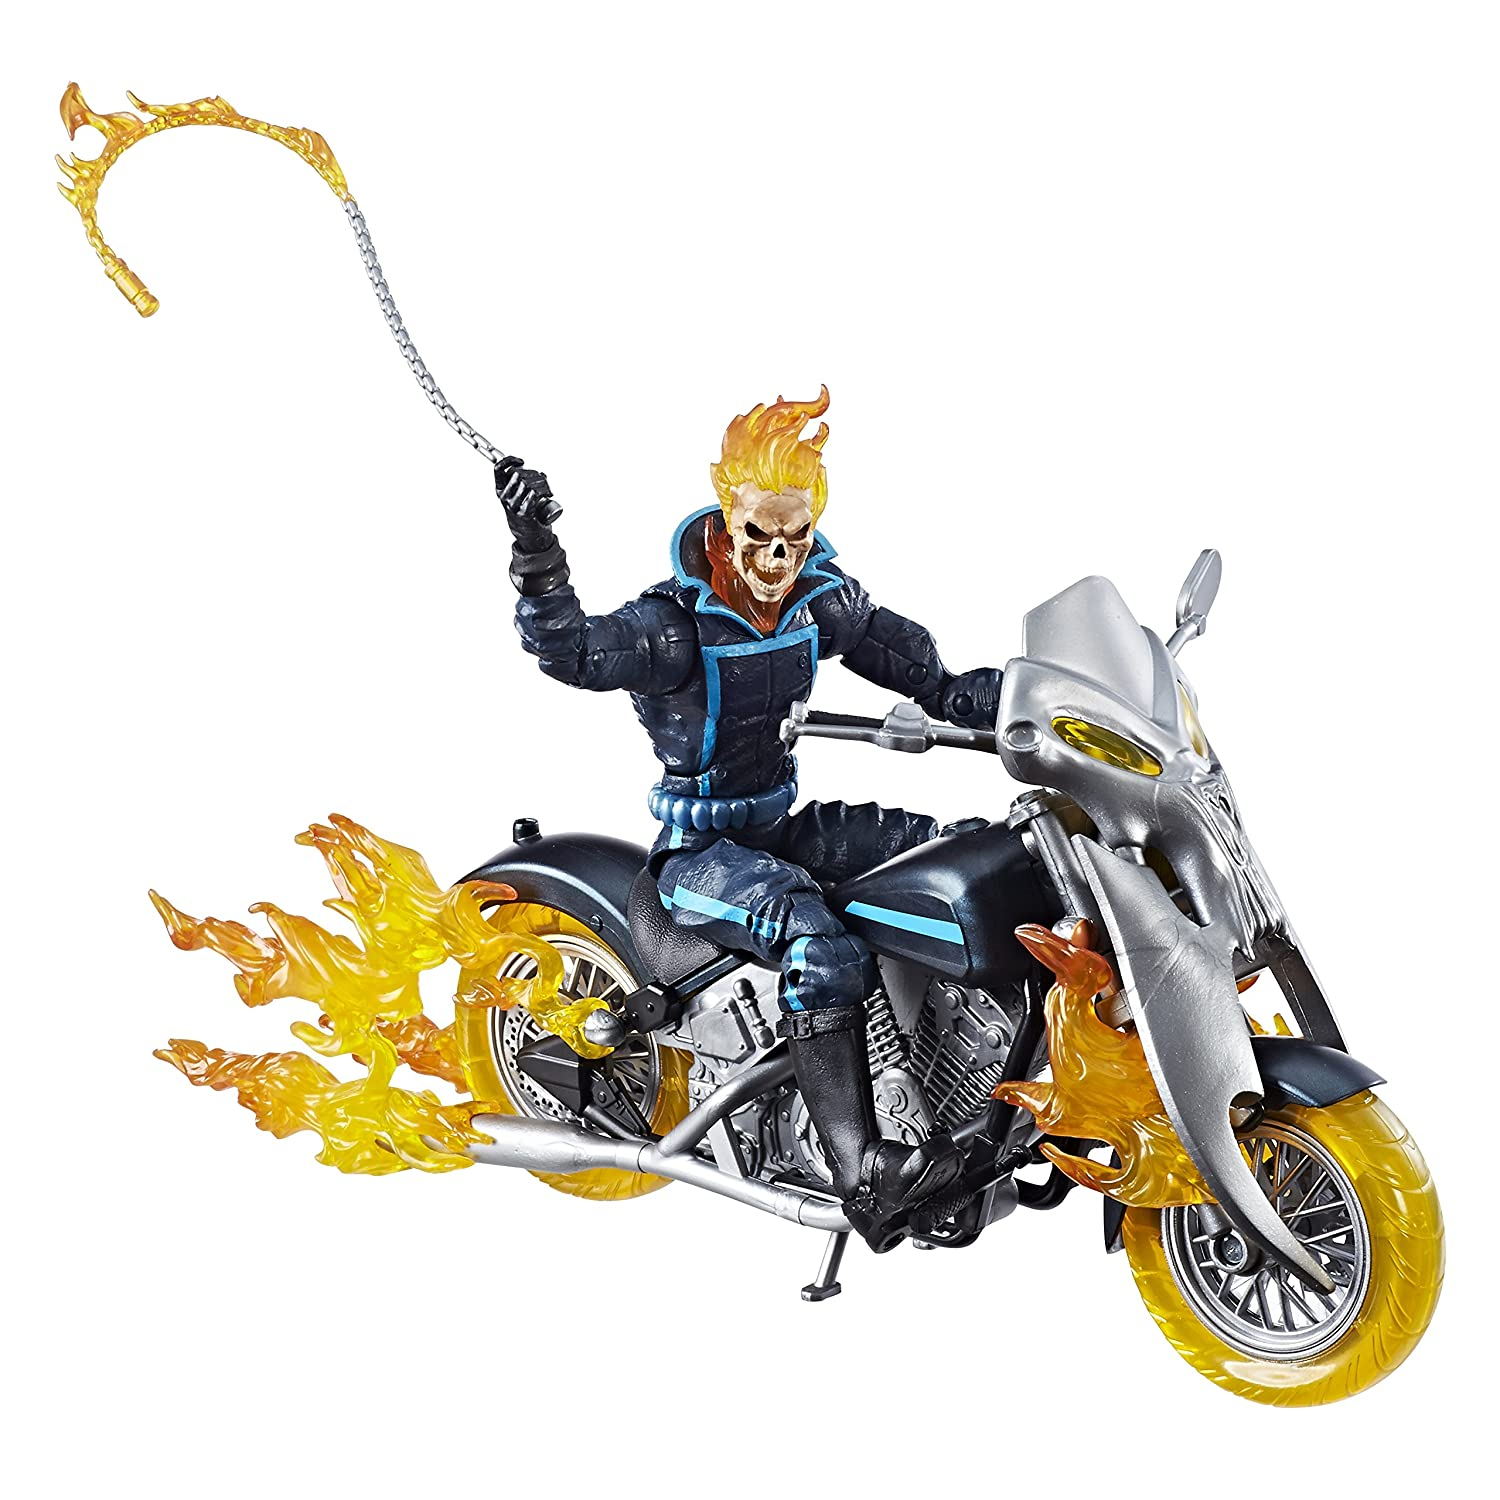 Marvel Legends Series 6-inch Ghost Rider with Flame Cycle Hasbro E1373 Action Figures